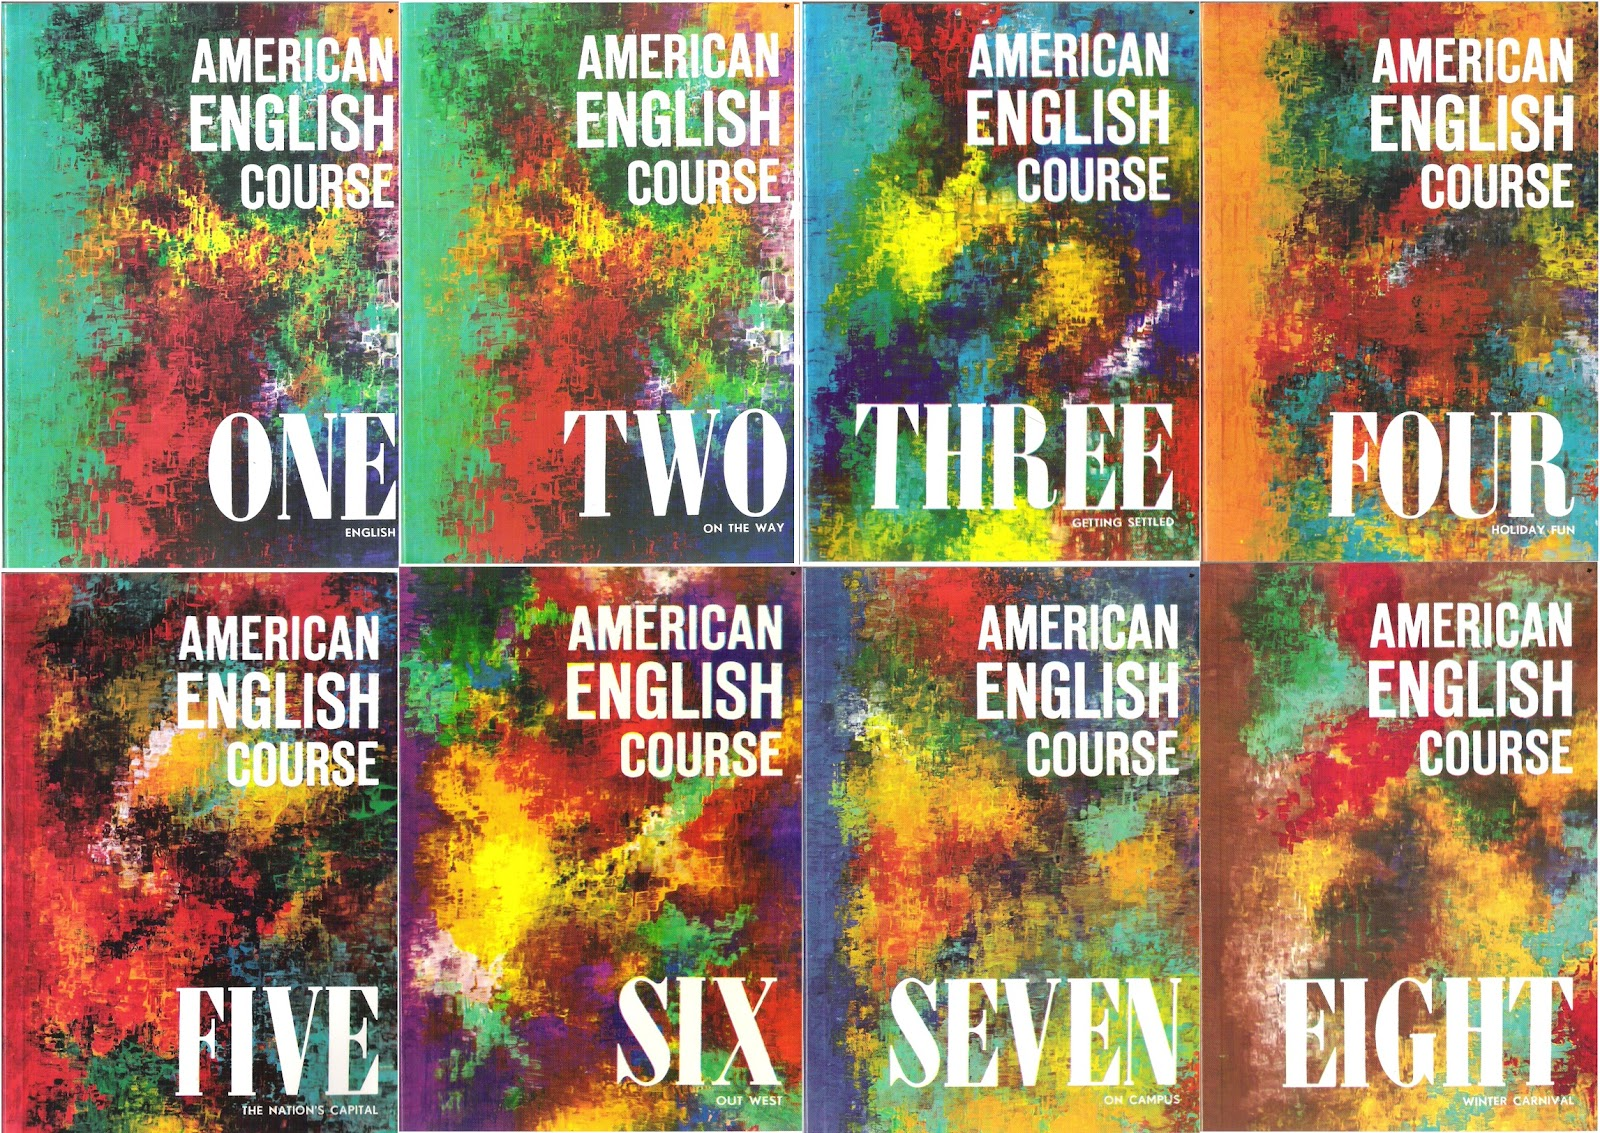 Donde Comprar Libros Ingles The American English Course Pdf